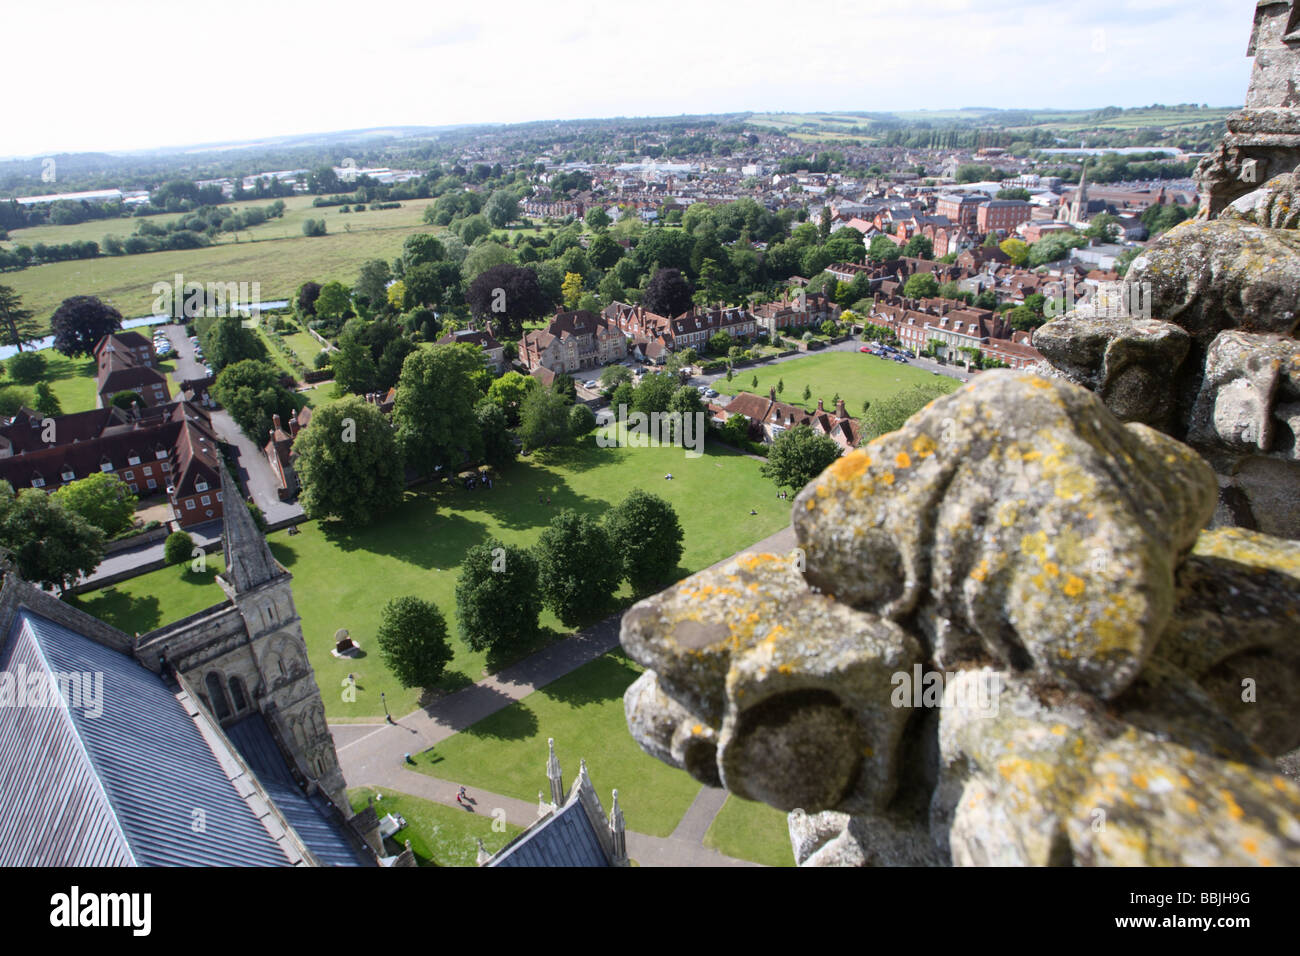 View of Salisbury from the spire of Salisbury Cathedral, Wiltshire, England Stock Photo